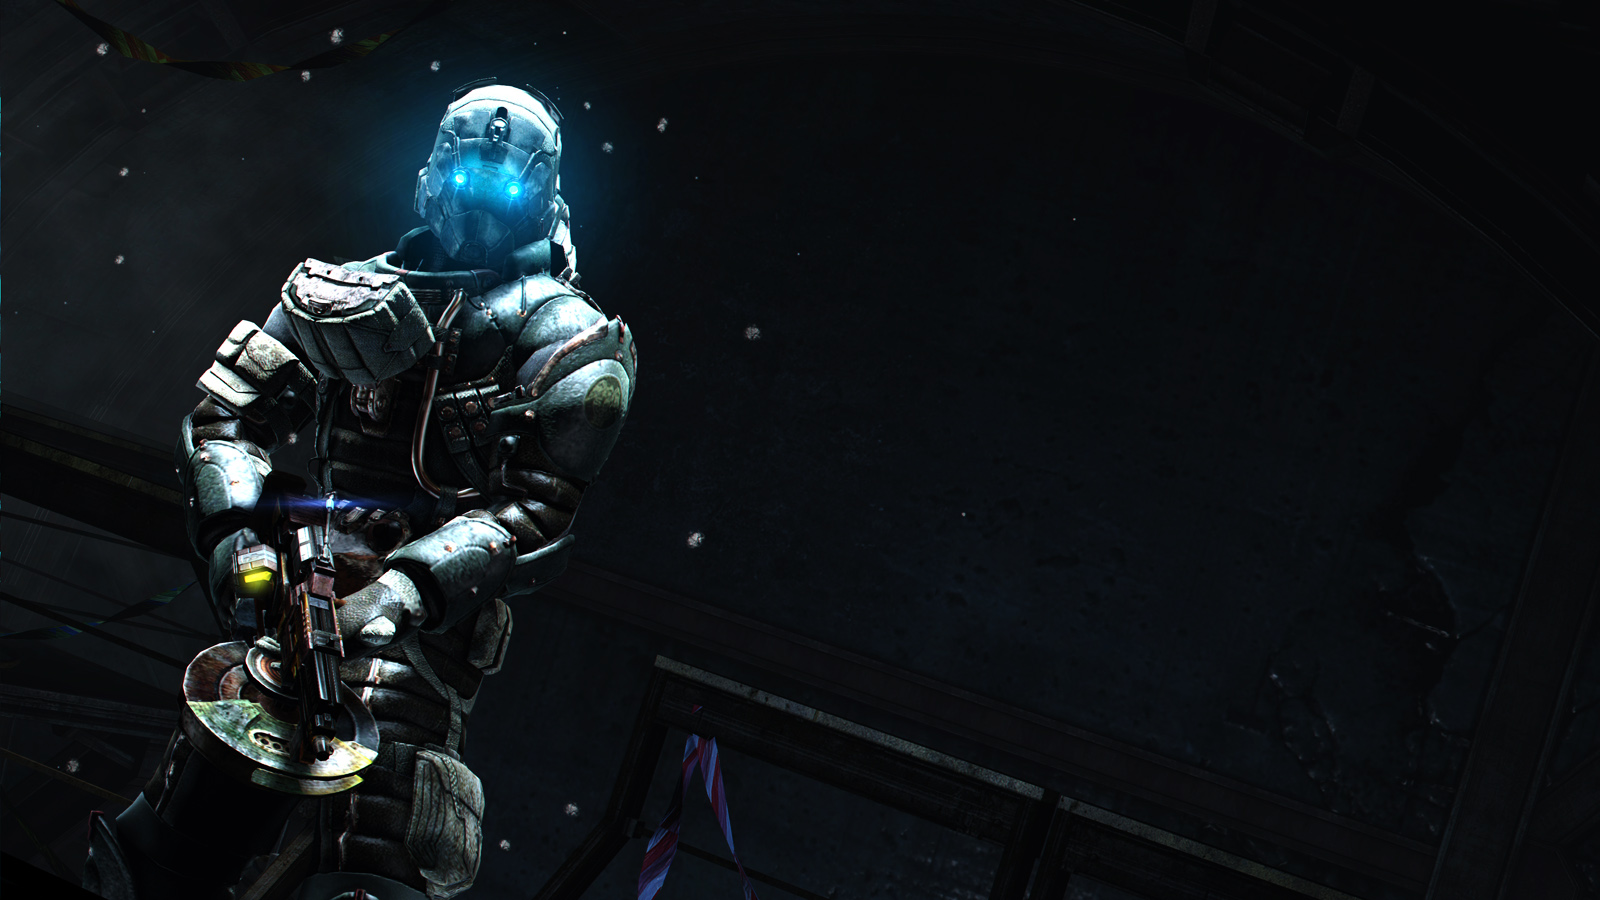 Space Wallpaper 2013 Dead Space Game HD Wallpapers Download Free Wallpapers in HD